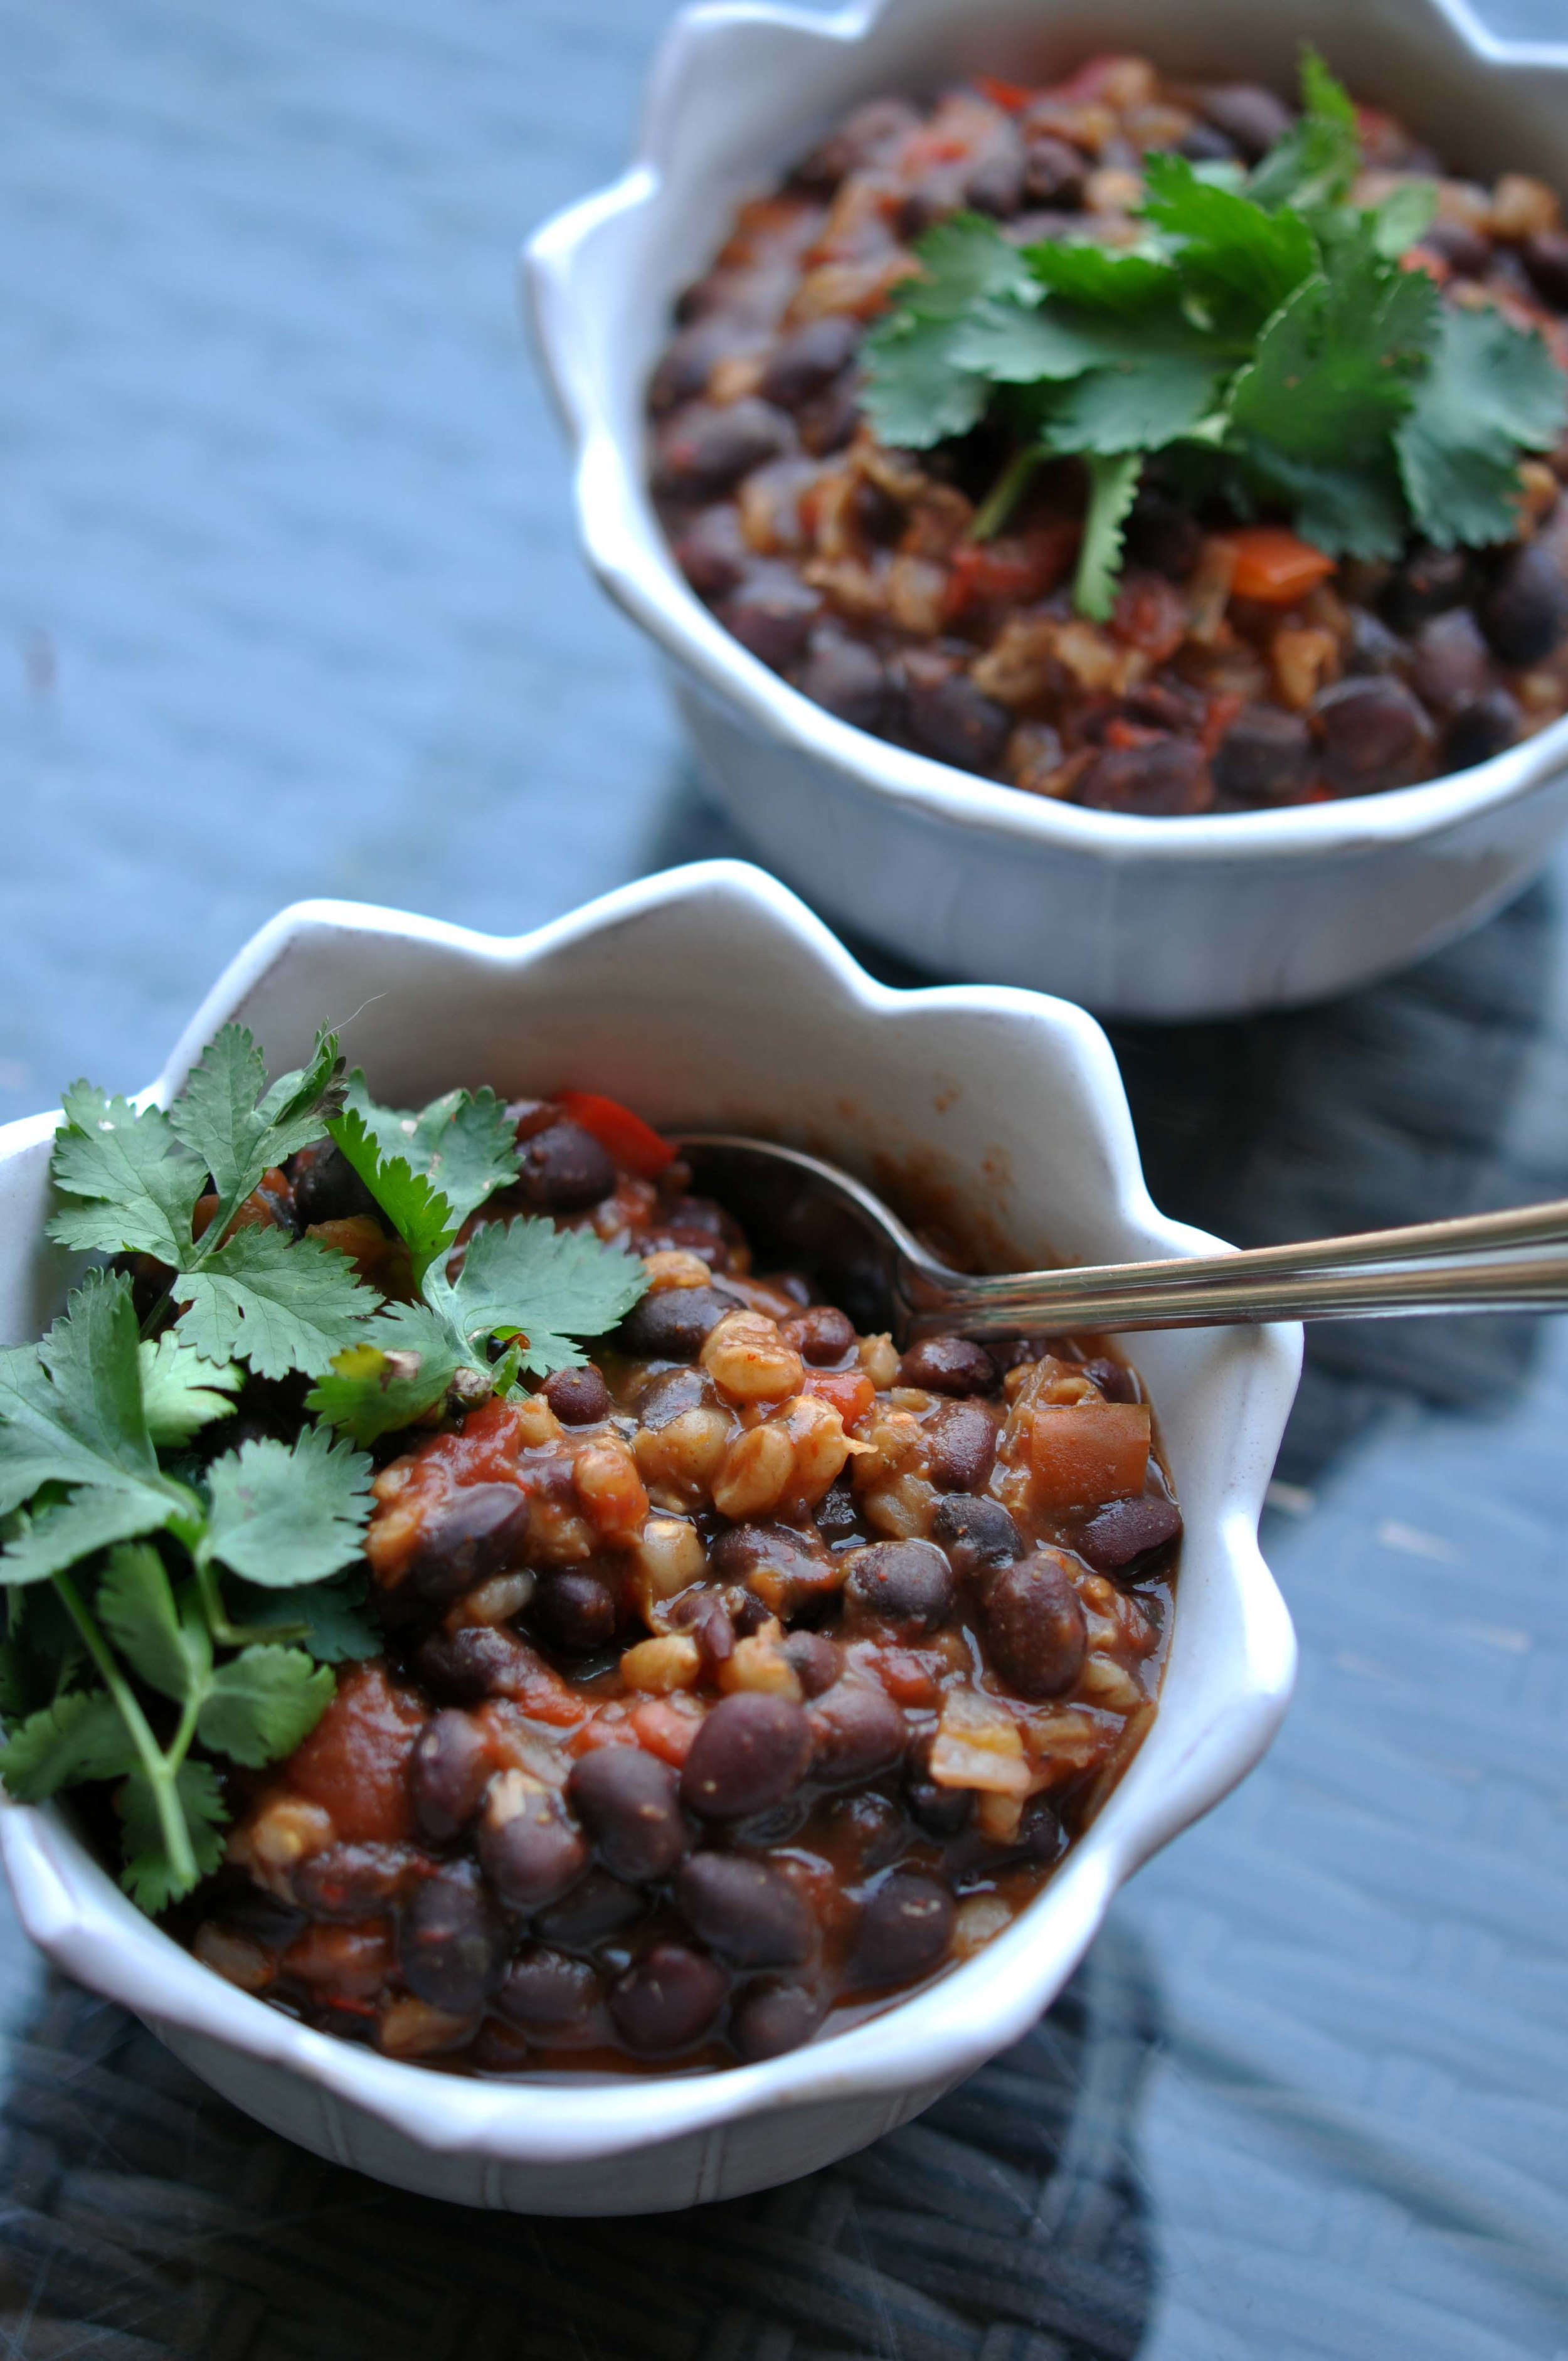 Slow Cooker Black Bean Chili with Bulgur, Red Bell Peppers, and Onion. This healthy recipe is an easy, vegan meal.